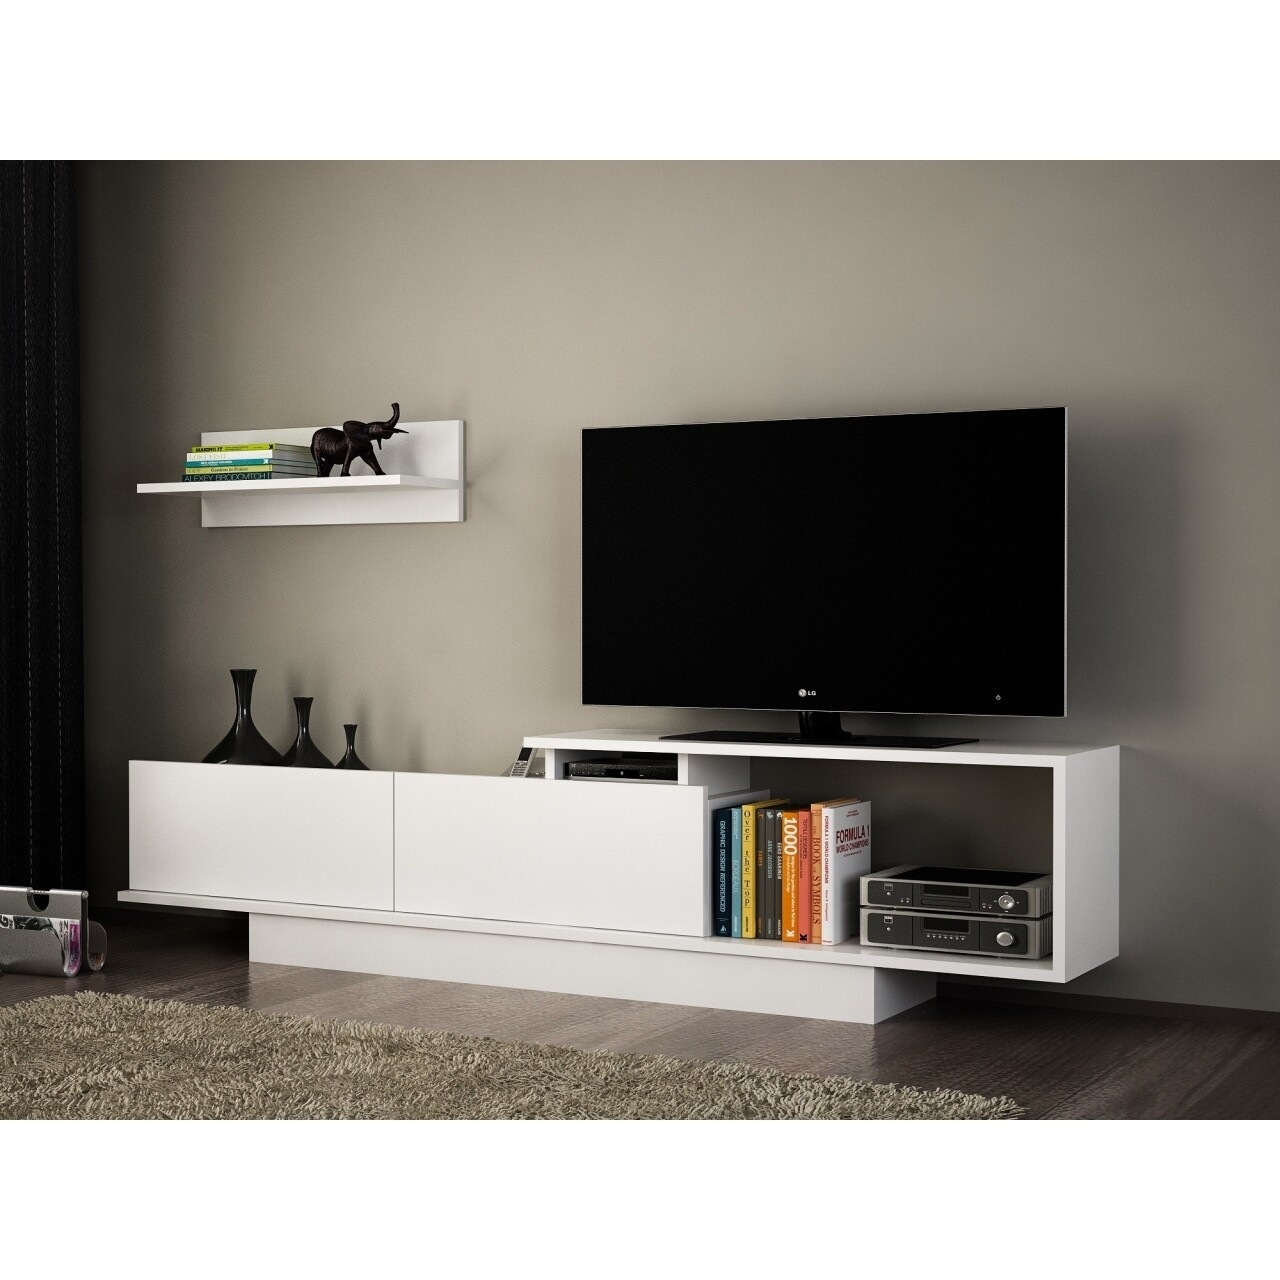 Comoda TV cu dulap, Wooden Art, Asos White